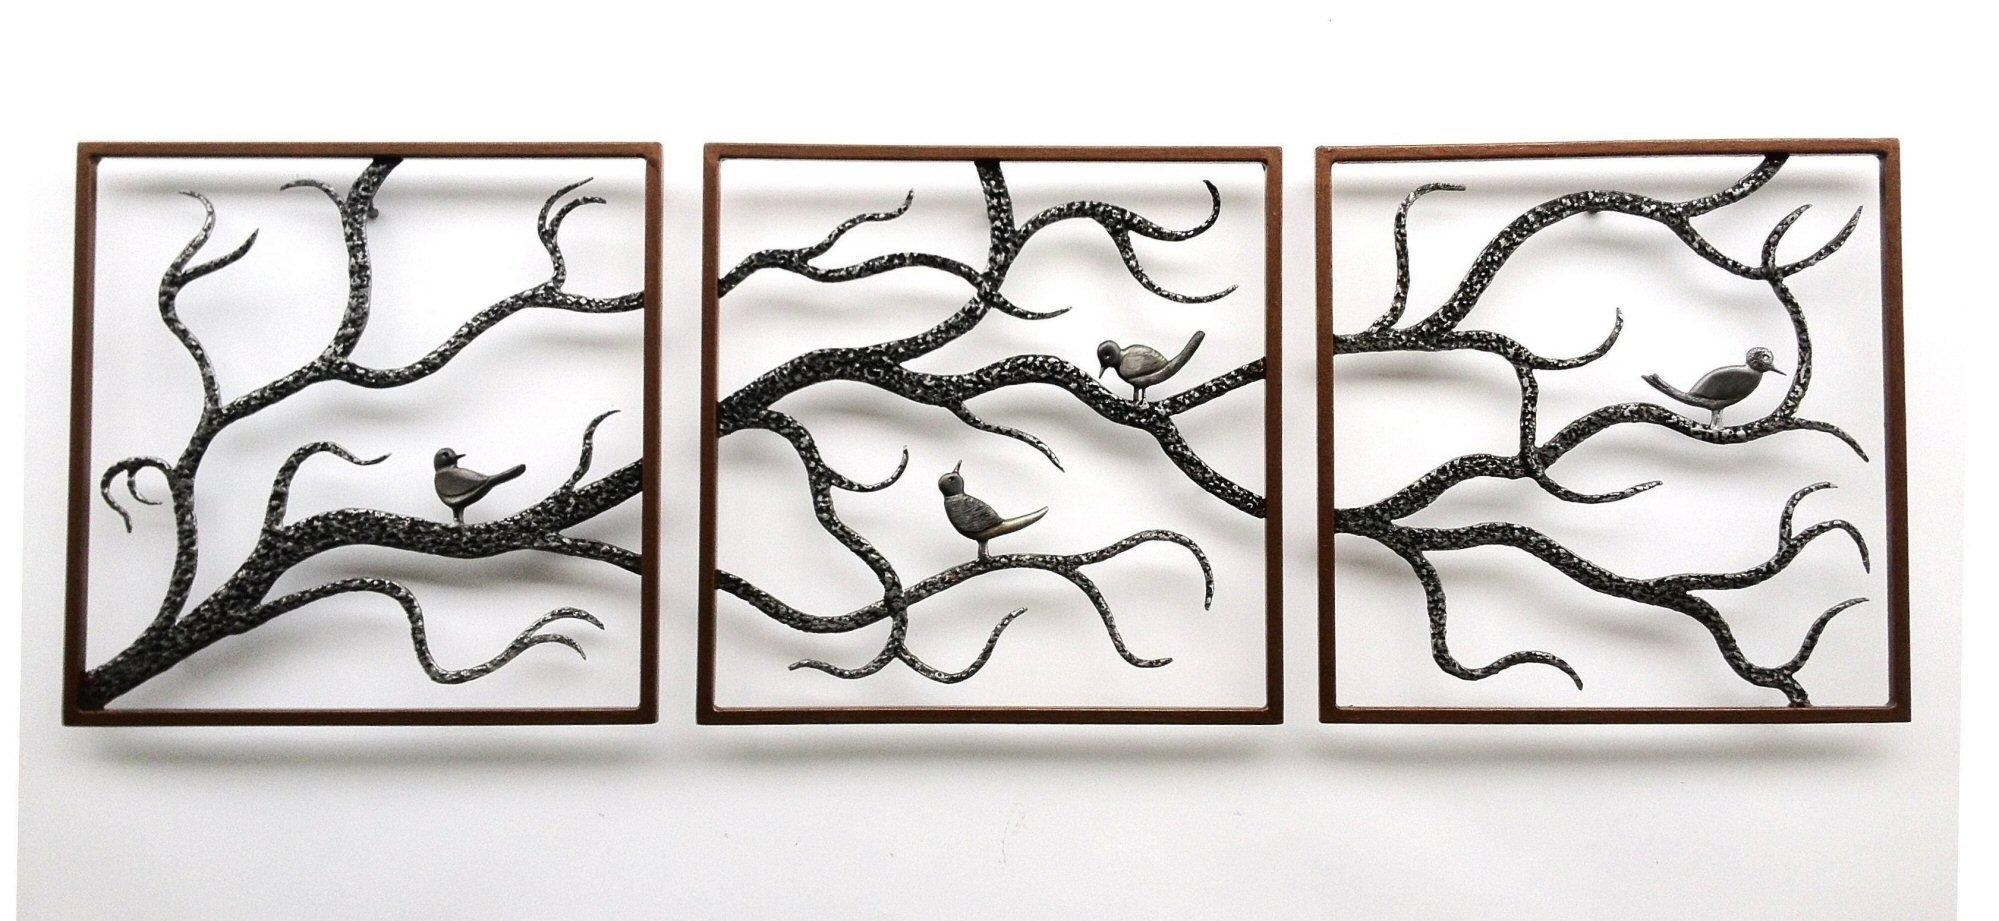 Wall Art Designs: Metal Wall Art Trees Birch Three Framed Cute For Large Metal Wall Art Sculptures (Image 16 of 20)